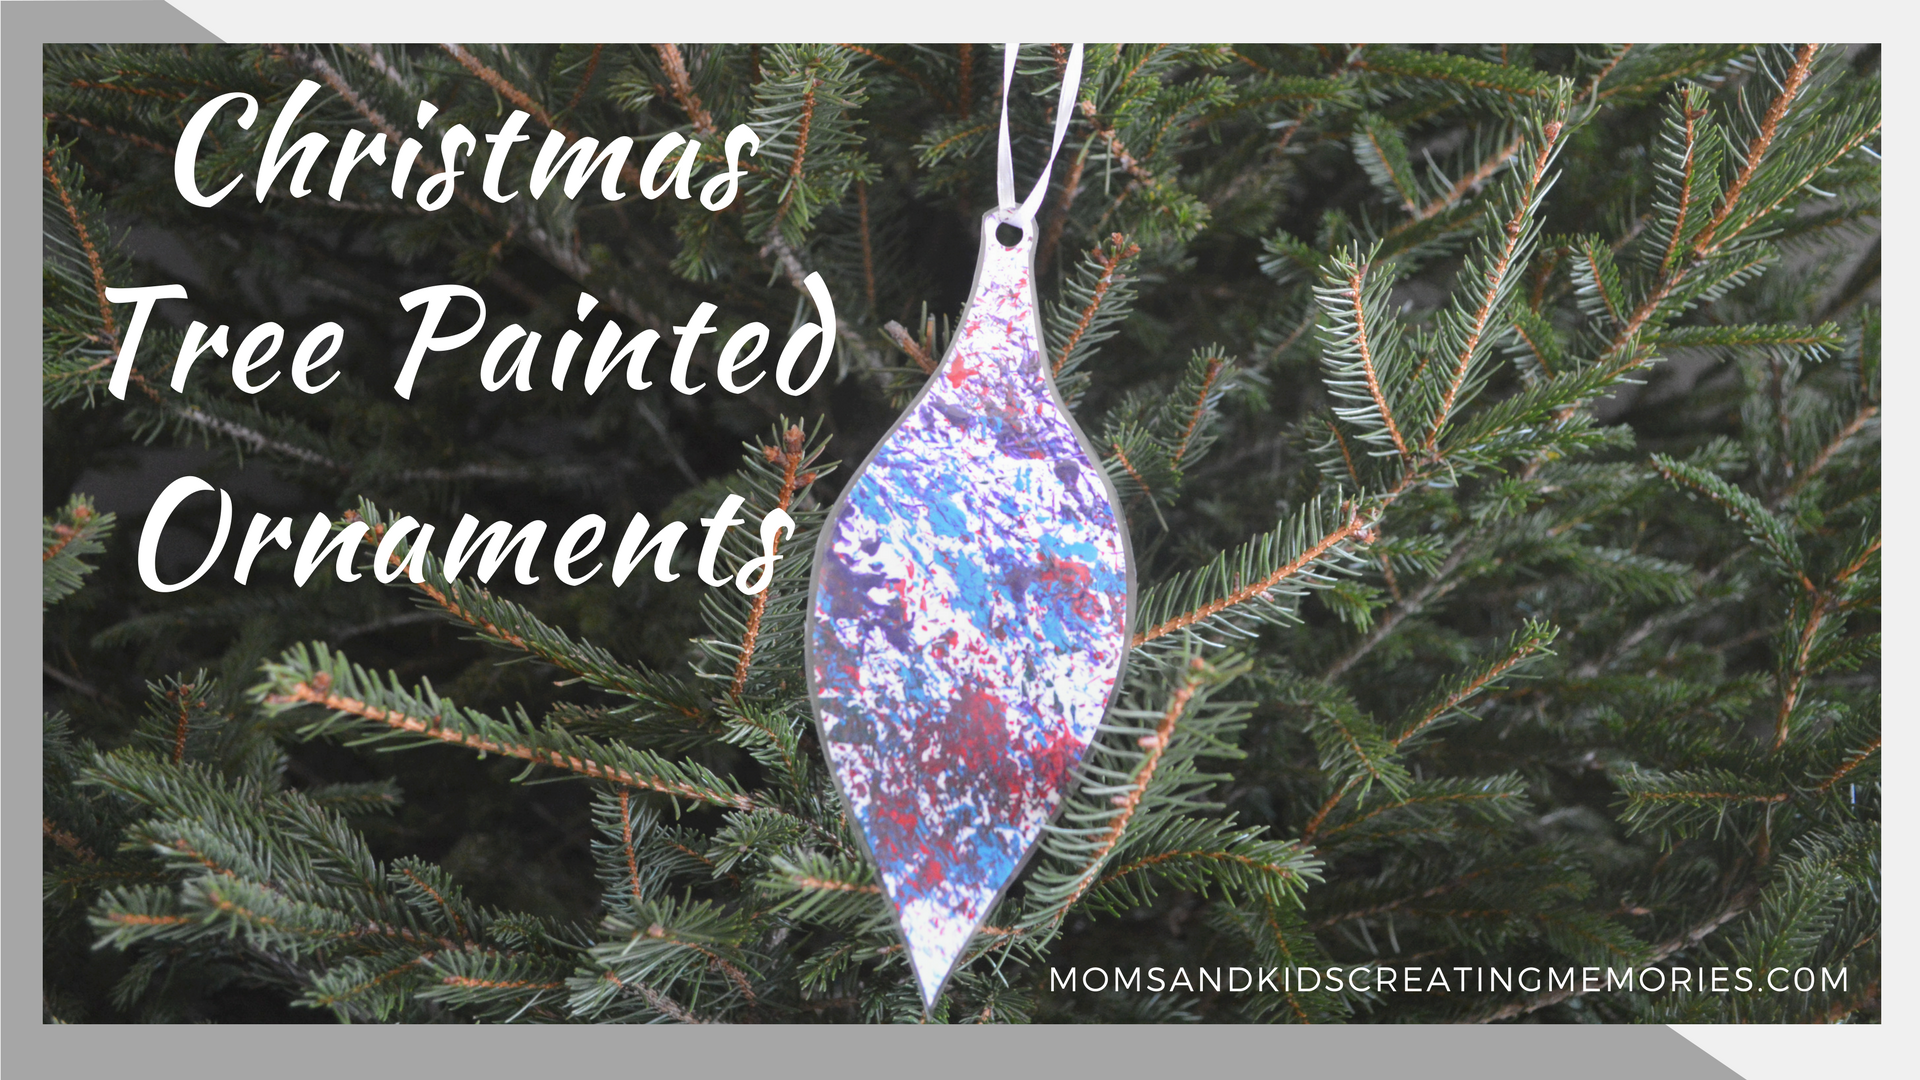 Christmas Tree Painted Ornament Moms And Kids Creating Memories